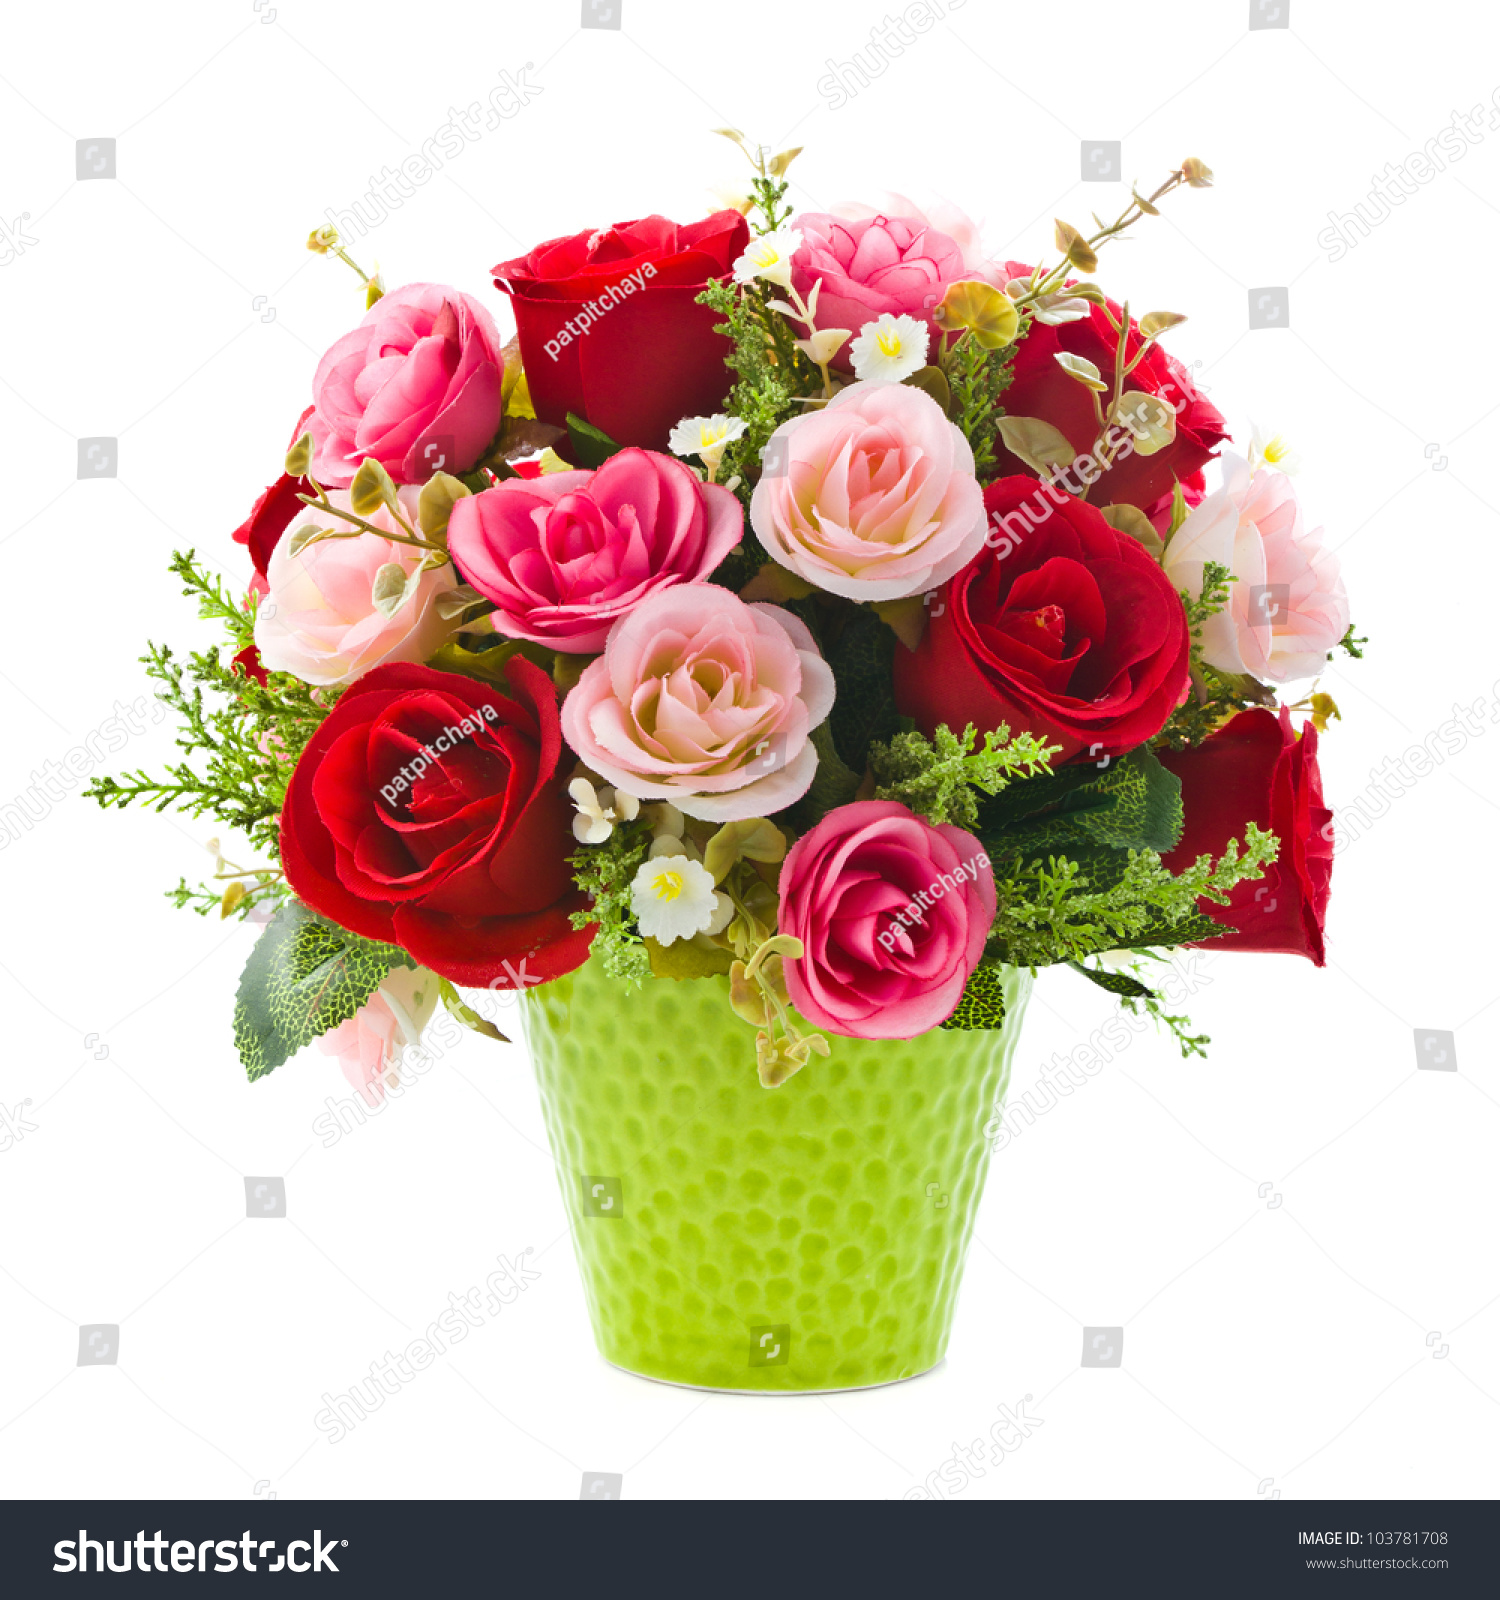 Flower Pots With Artificial Flowers Stock Photo Artificial Rose Flowers In Green Vase